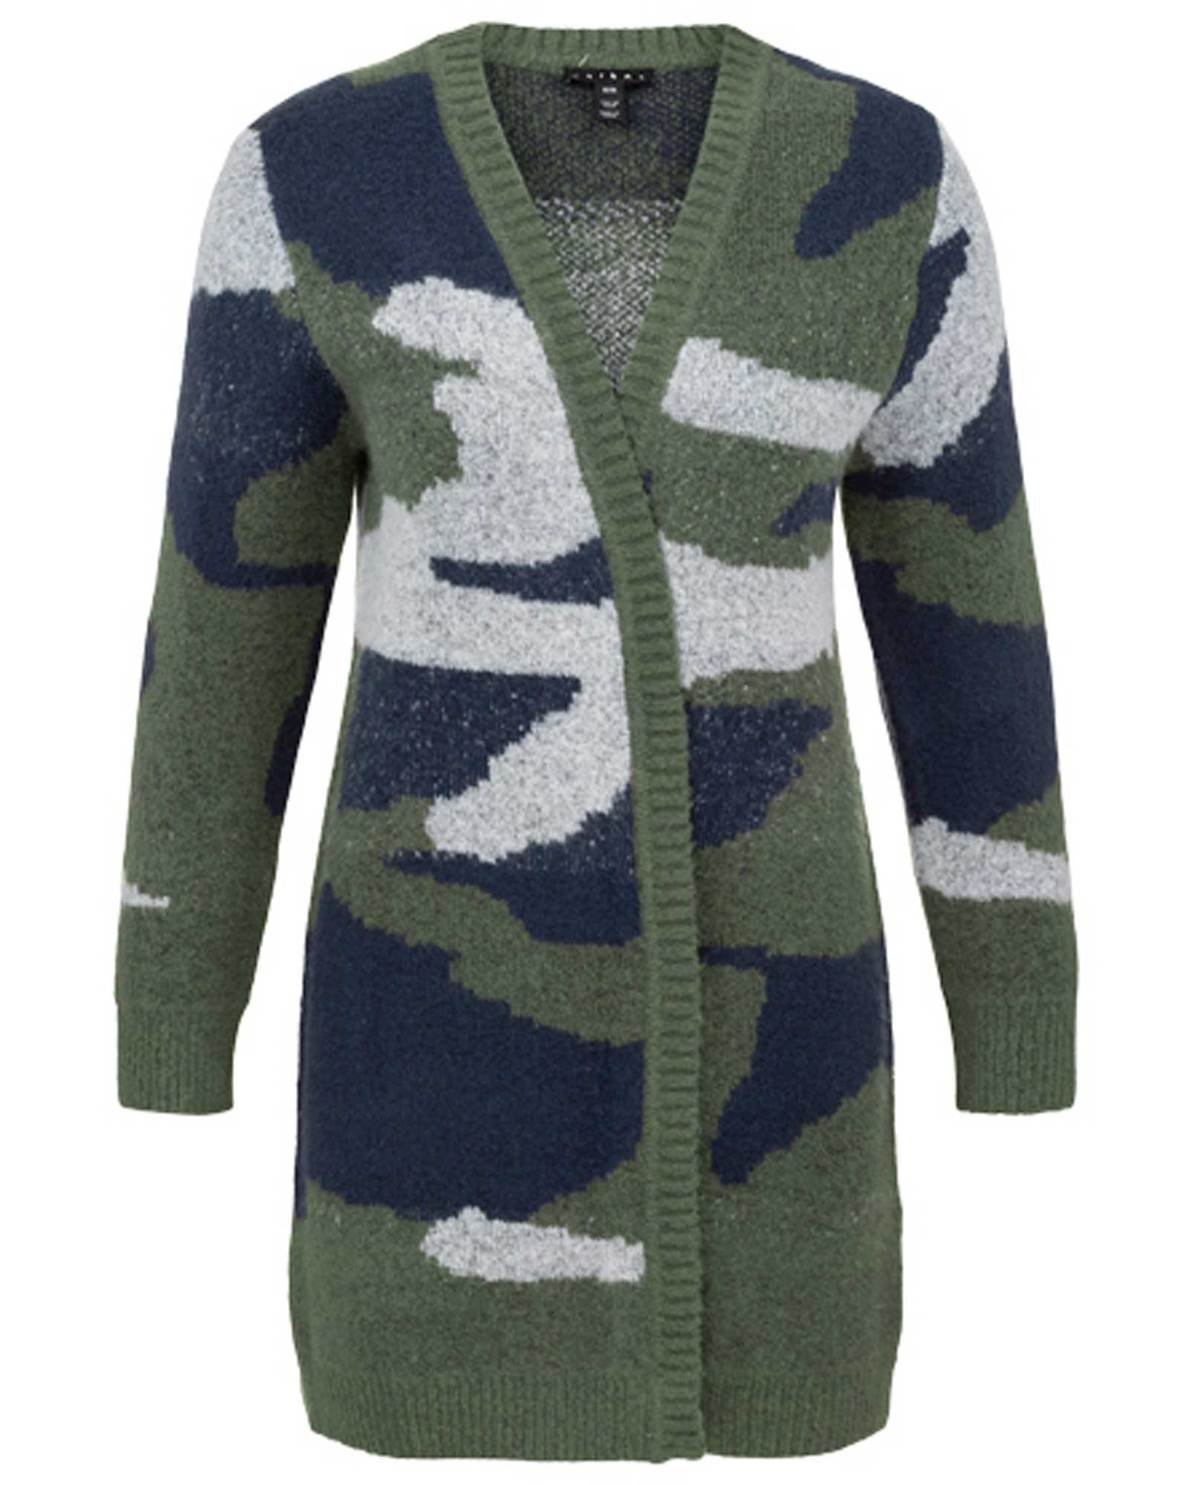 Camo Knit Open Front Cardigan from Tribal